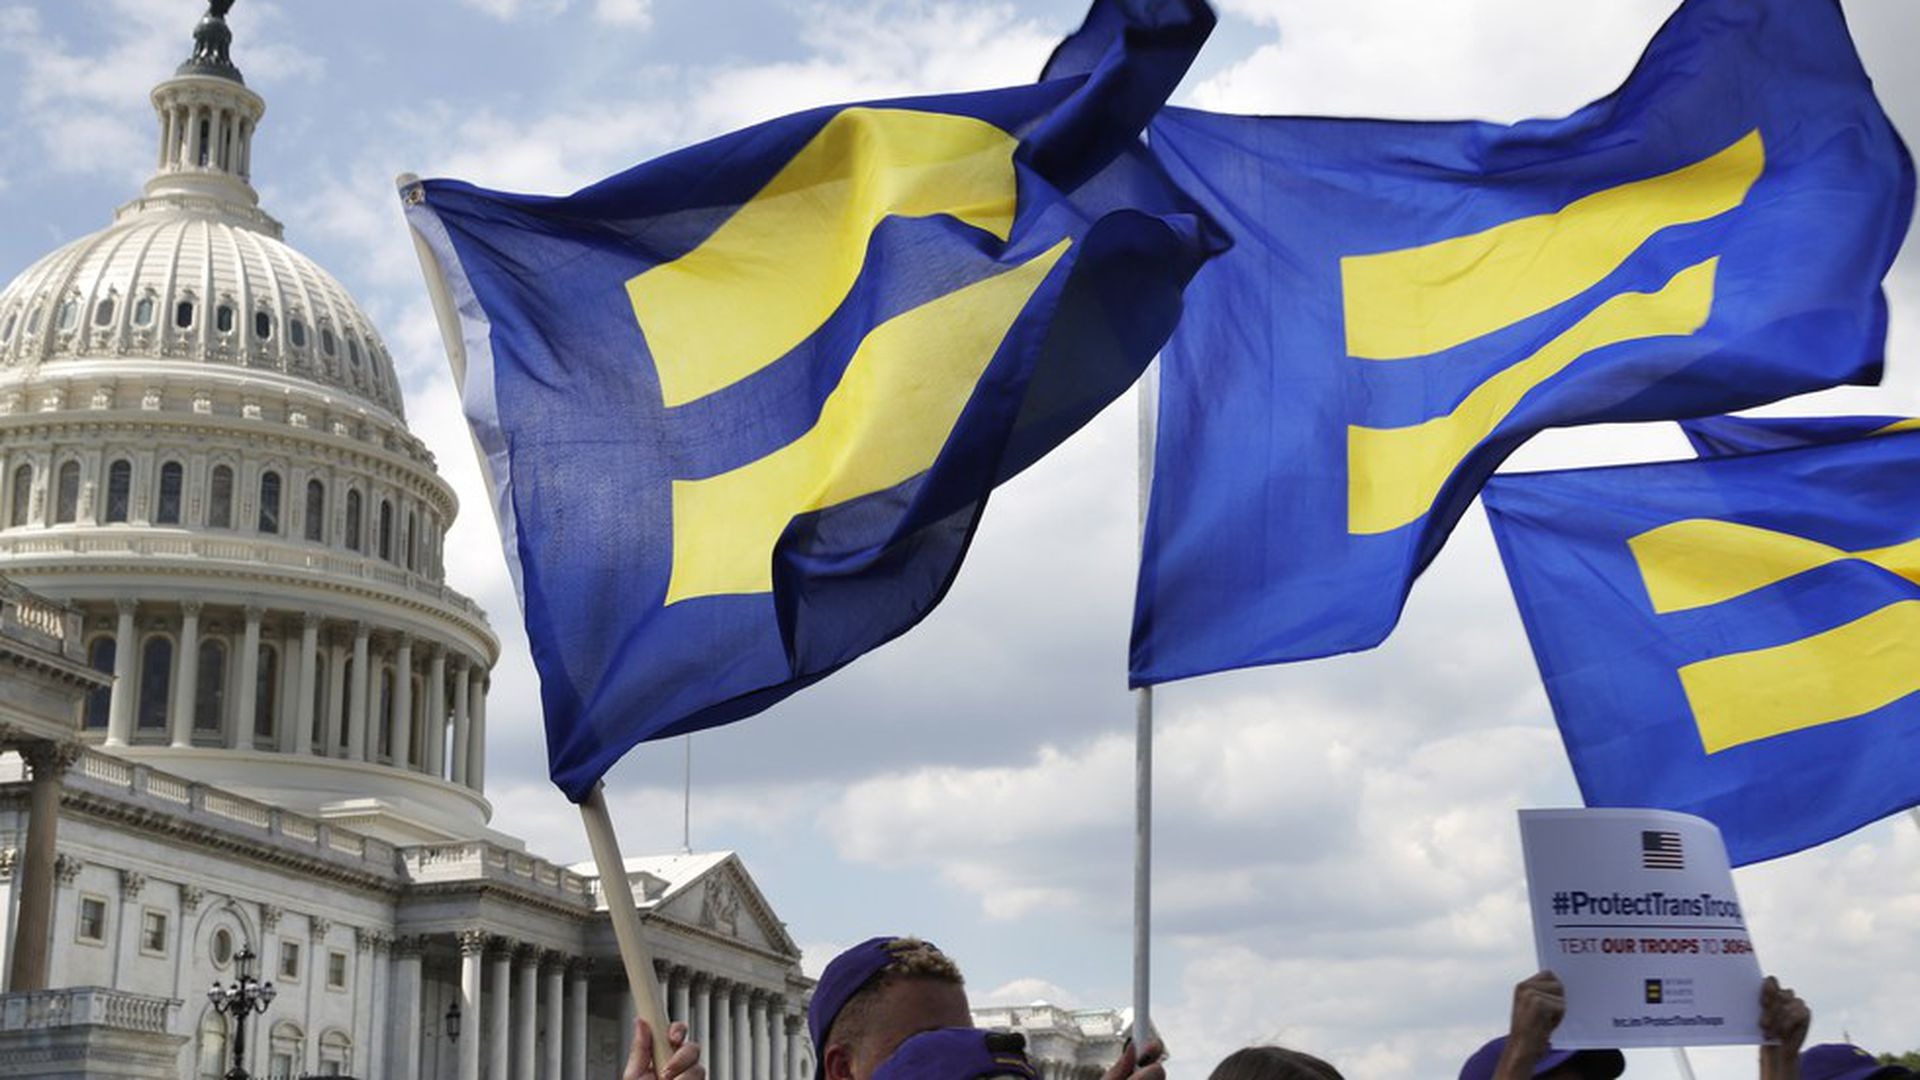 Civil rights commission condemns ban on transgender troops